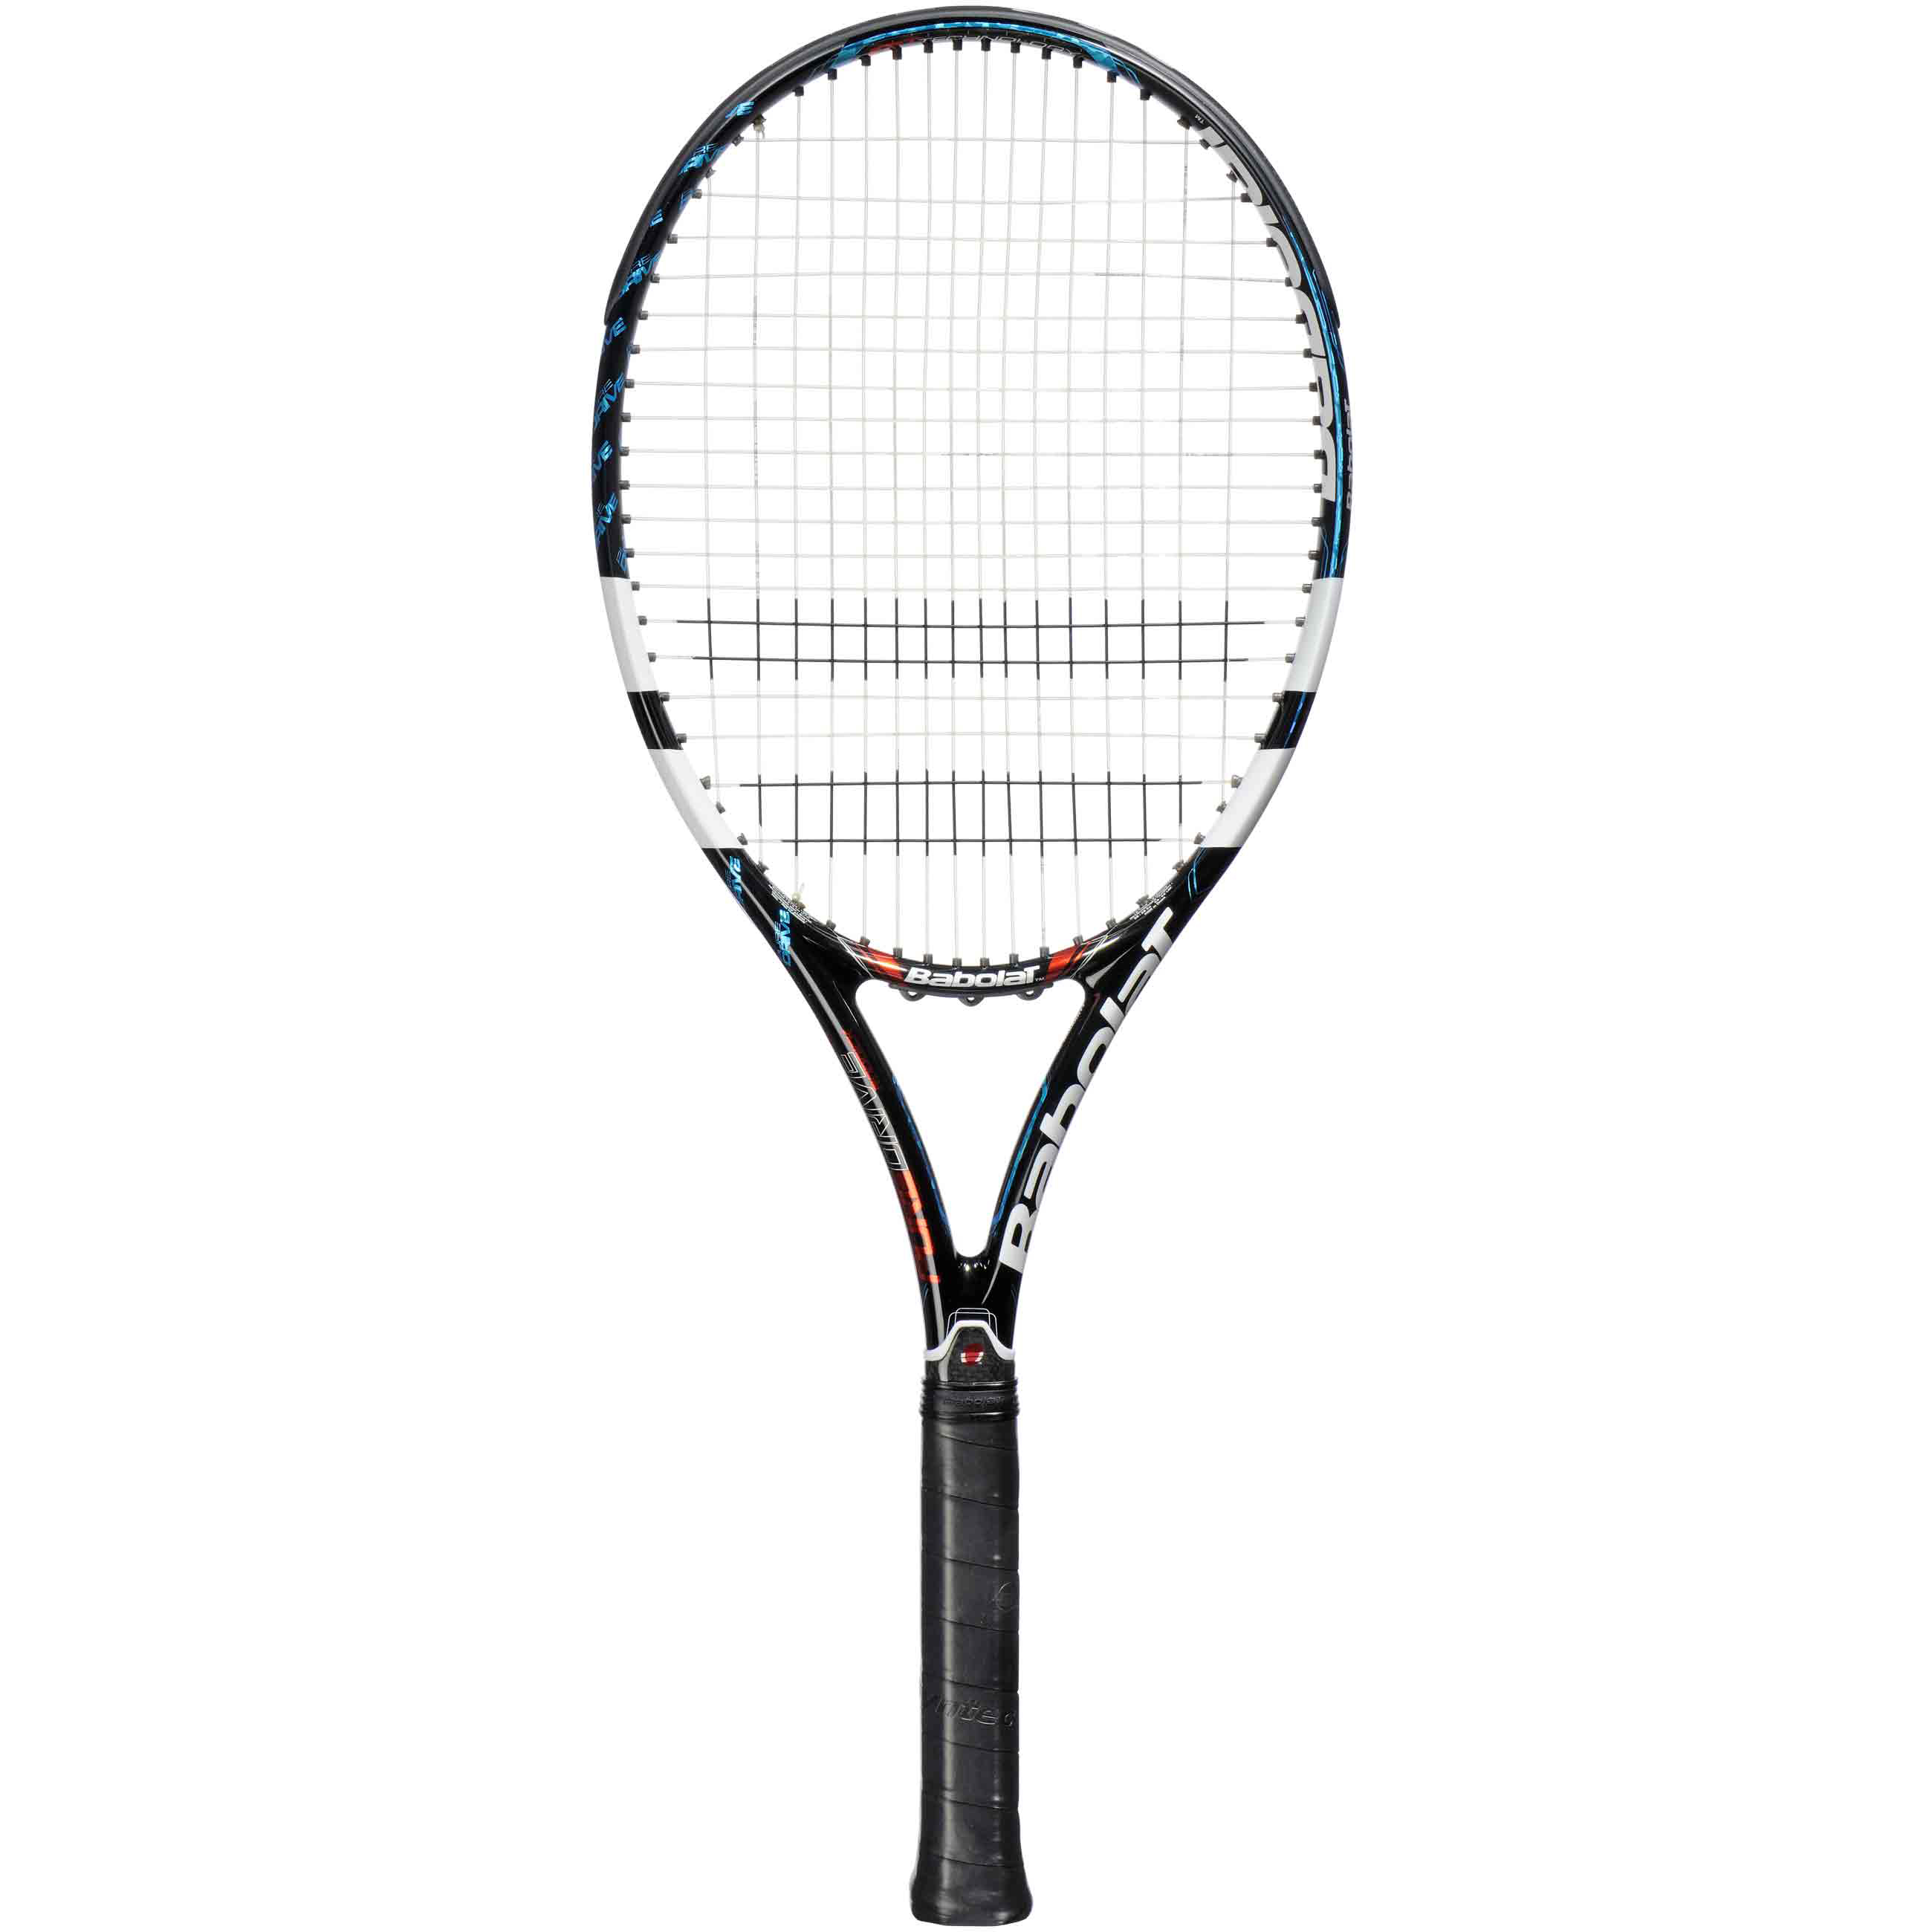 Free Tennis Racket Download Free Clip Art Free Clip Art